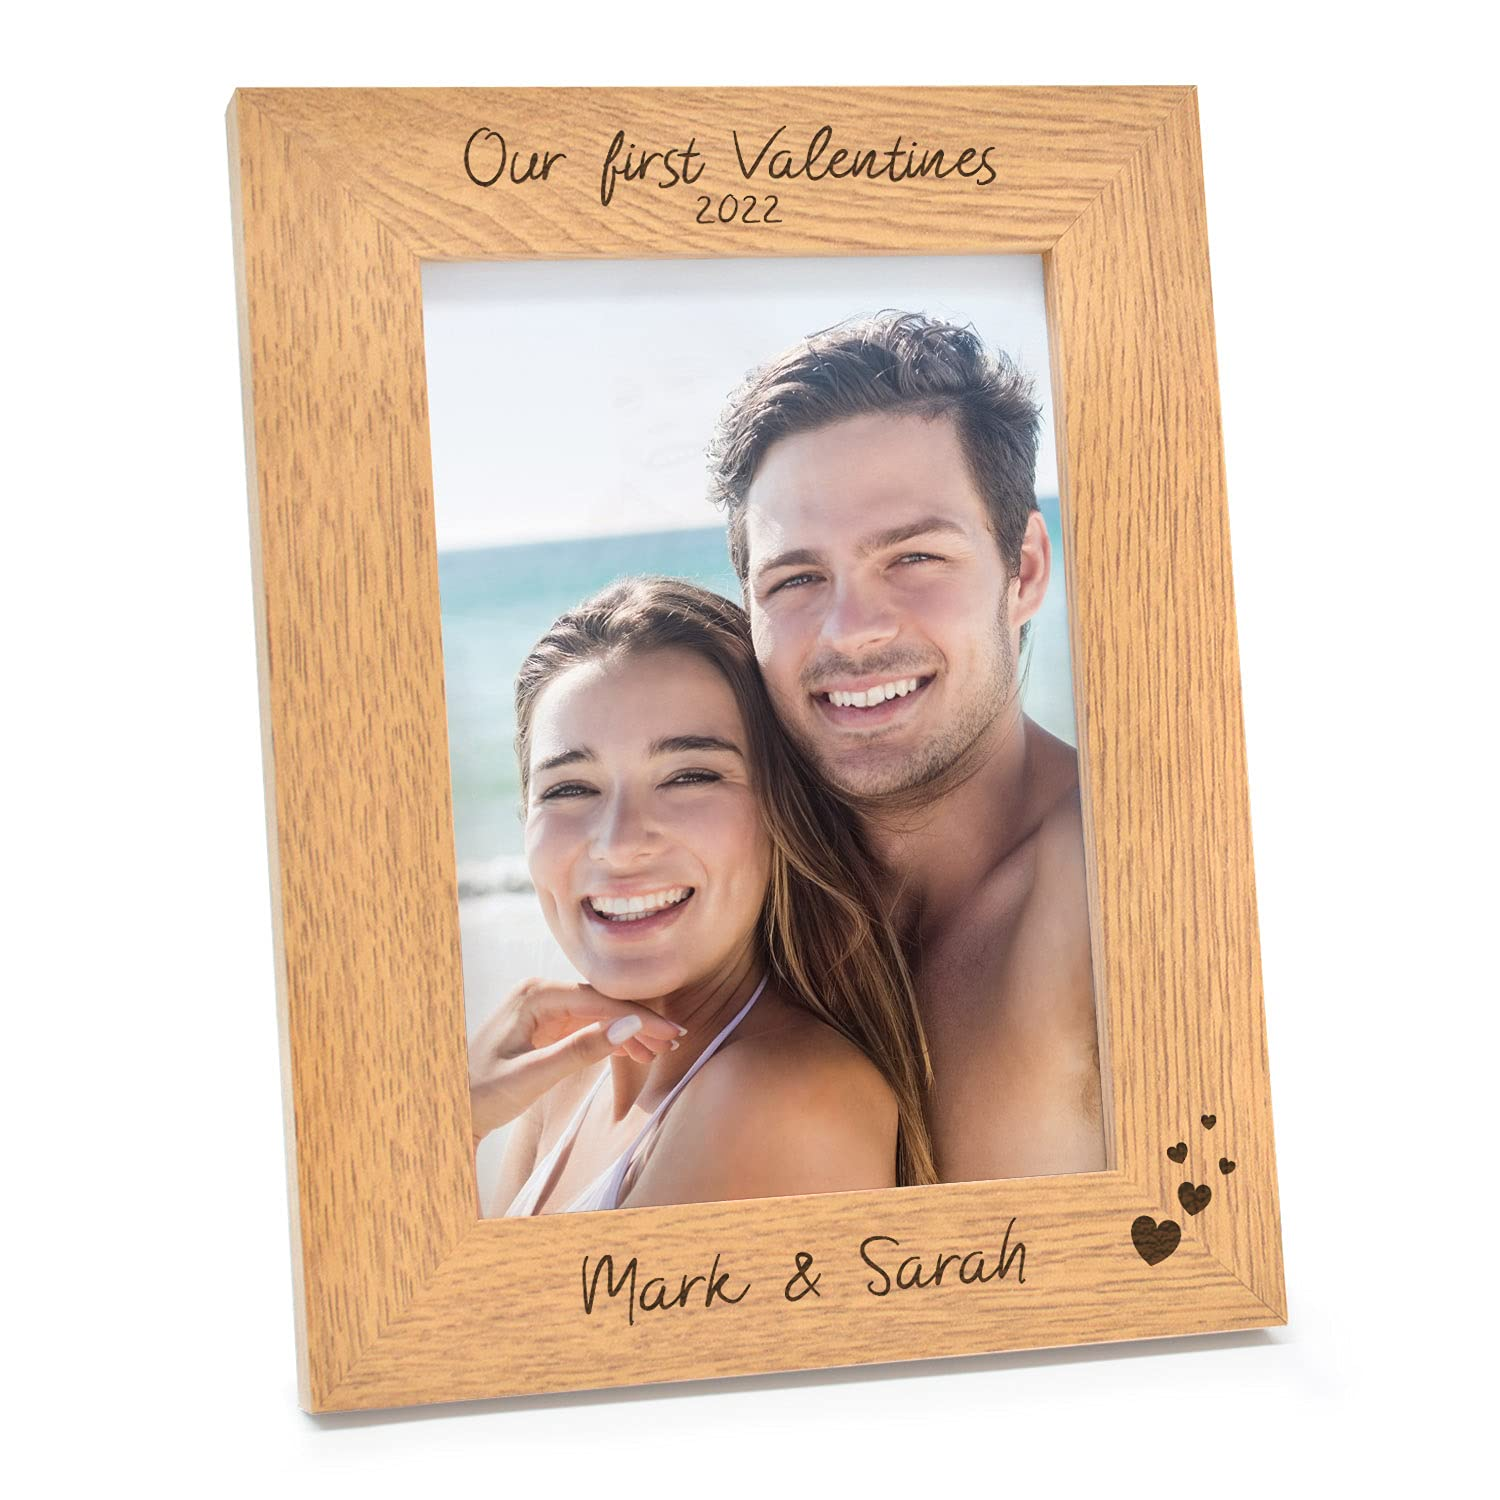 Max 89% OFF Our First Valentines PERSONALISED service Engraved Val Gifts Photo Frame